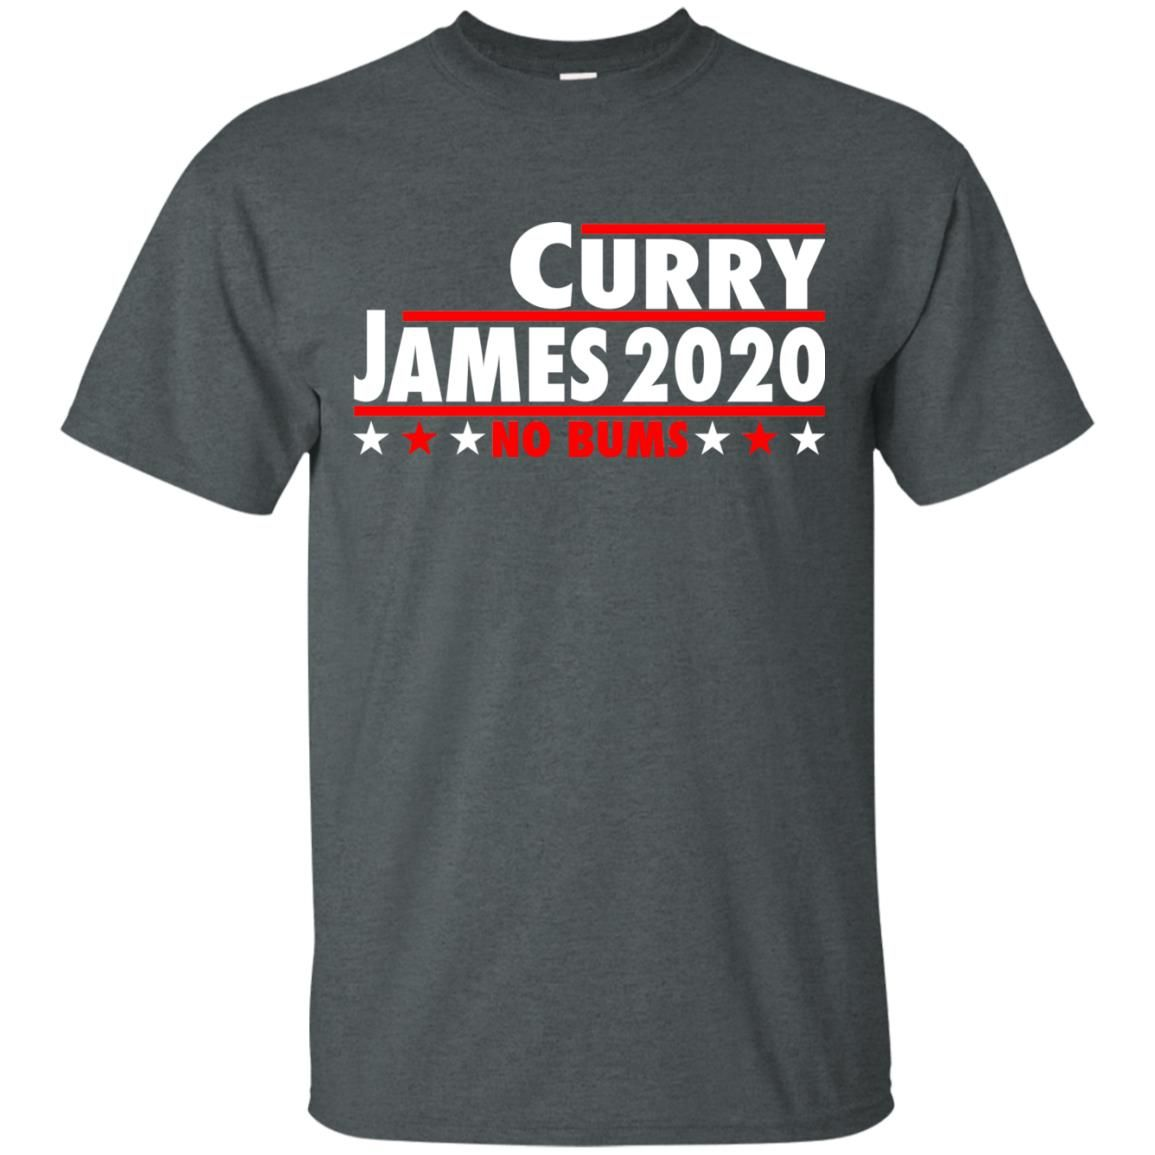 image 2023 - Curry Jame 2020 for President shirt